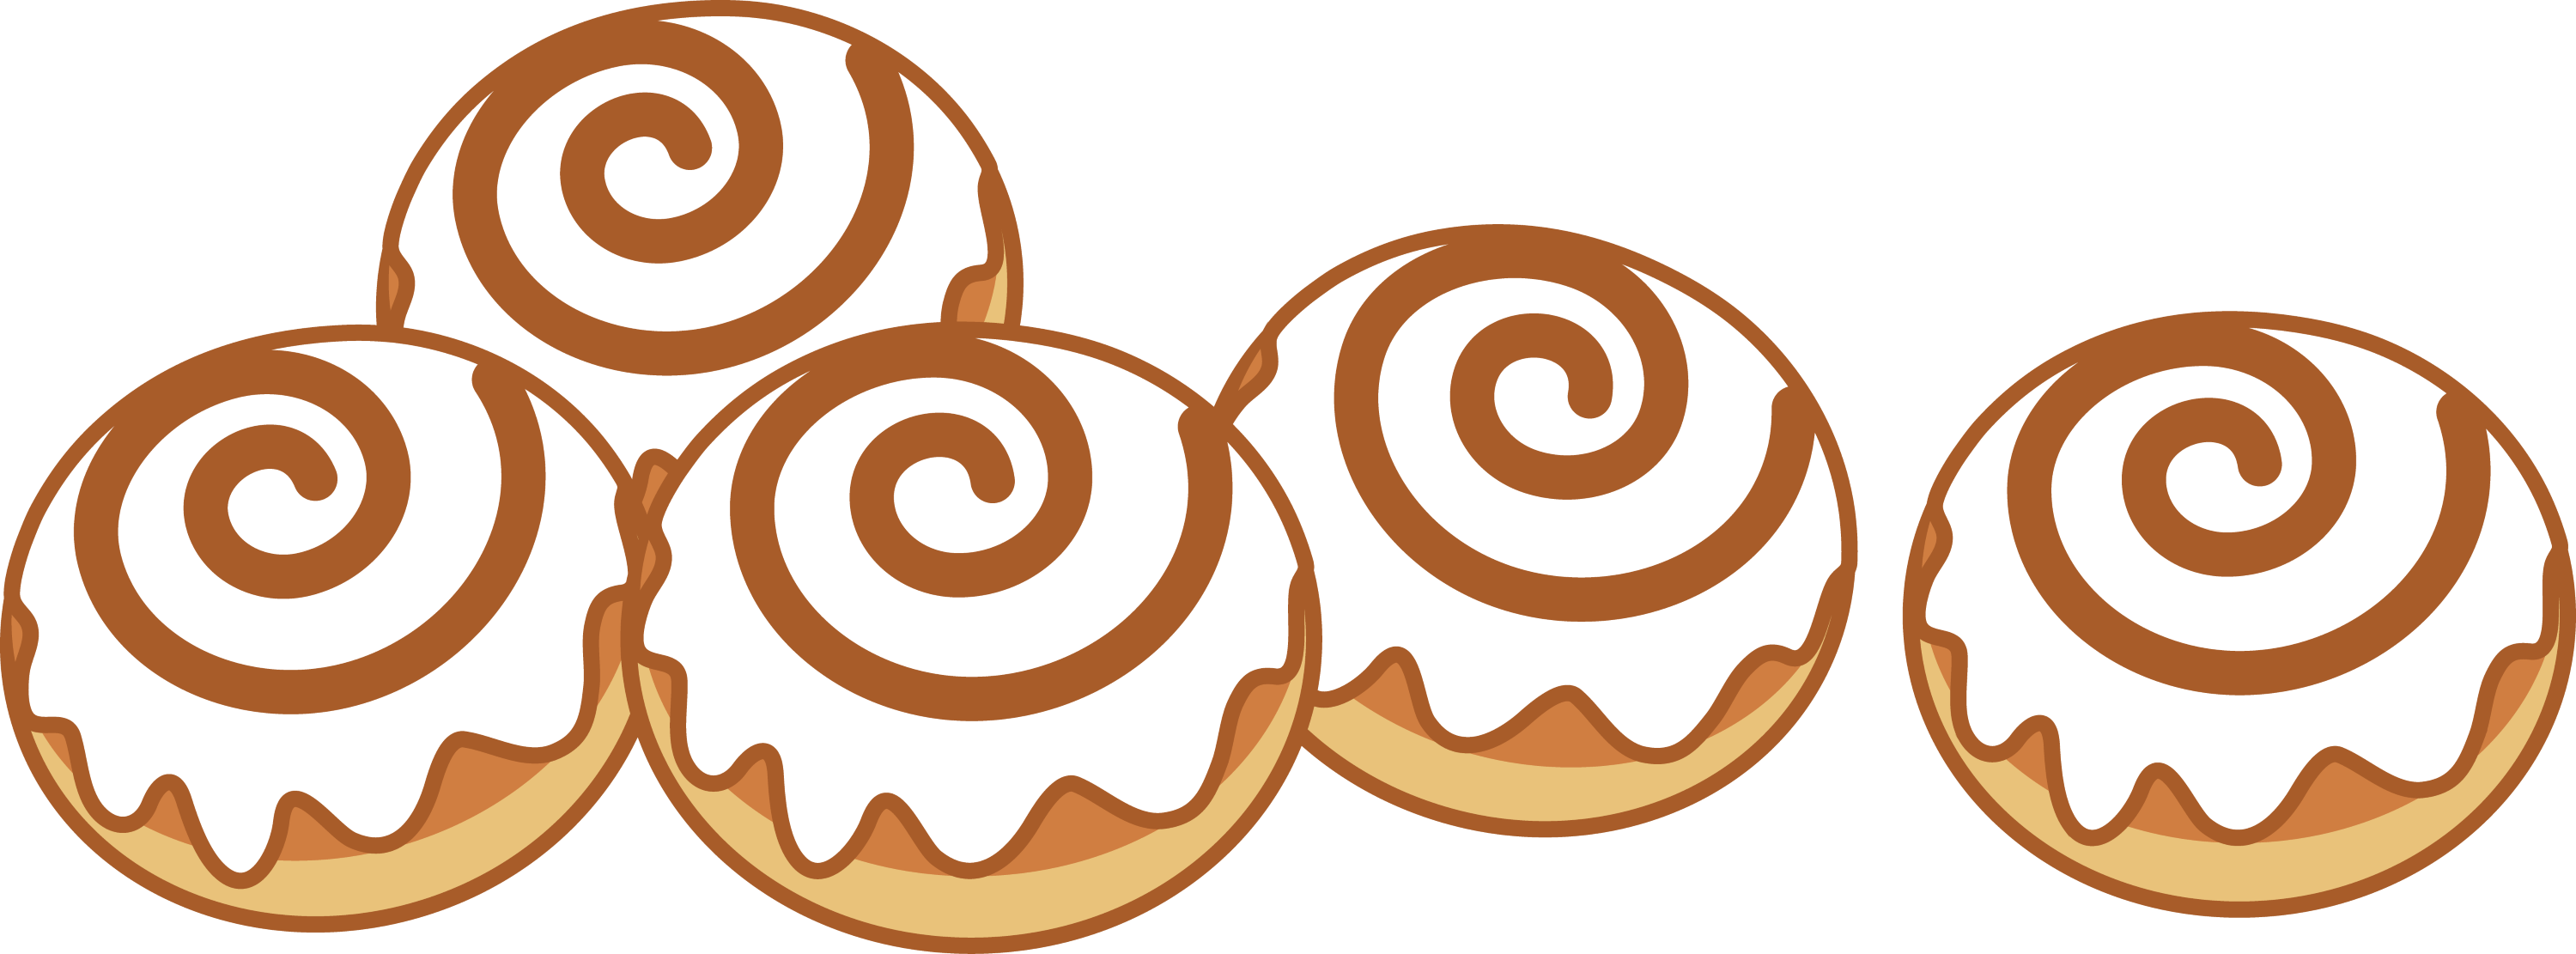 Five Cinnamon Rolls - Free Clip Art